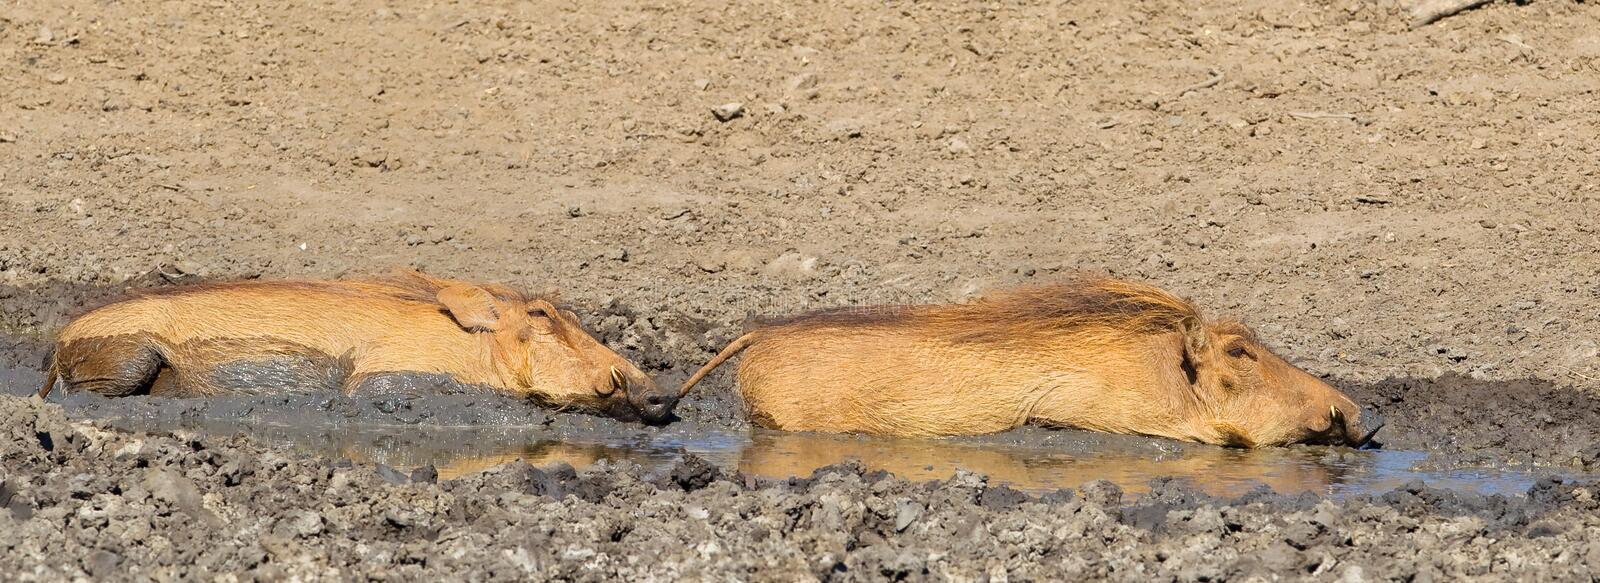 Two Warthogs wallowing in mud stock photography